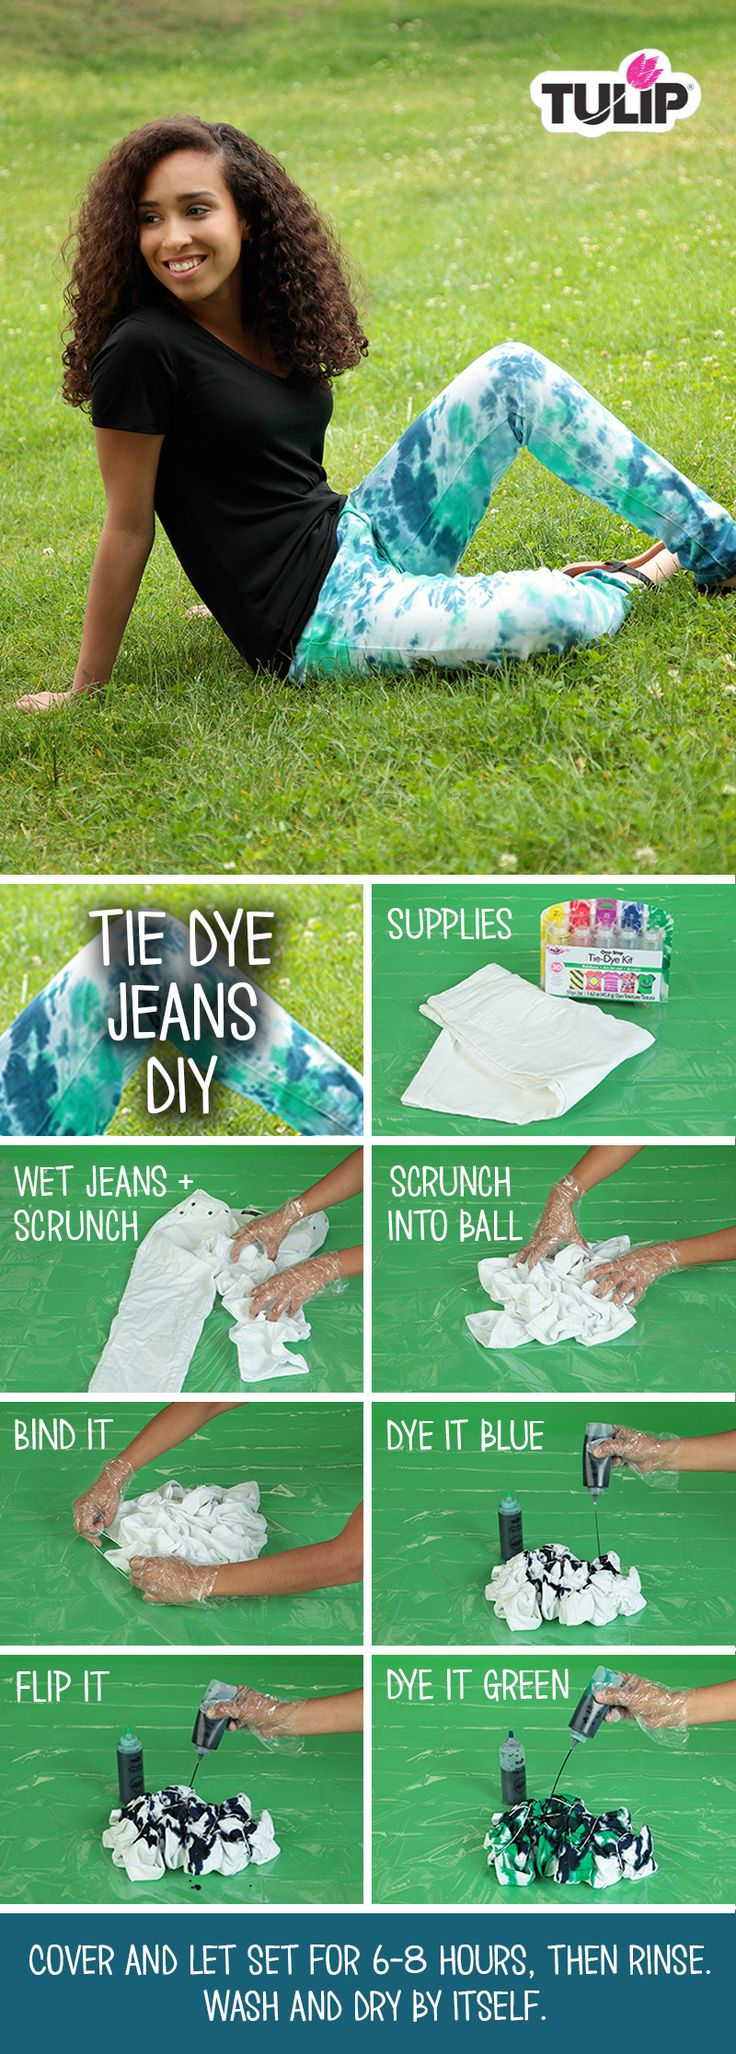 Sweet. How to Tie Dye Jeans using Tulip One-Step Tie Dye!